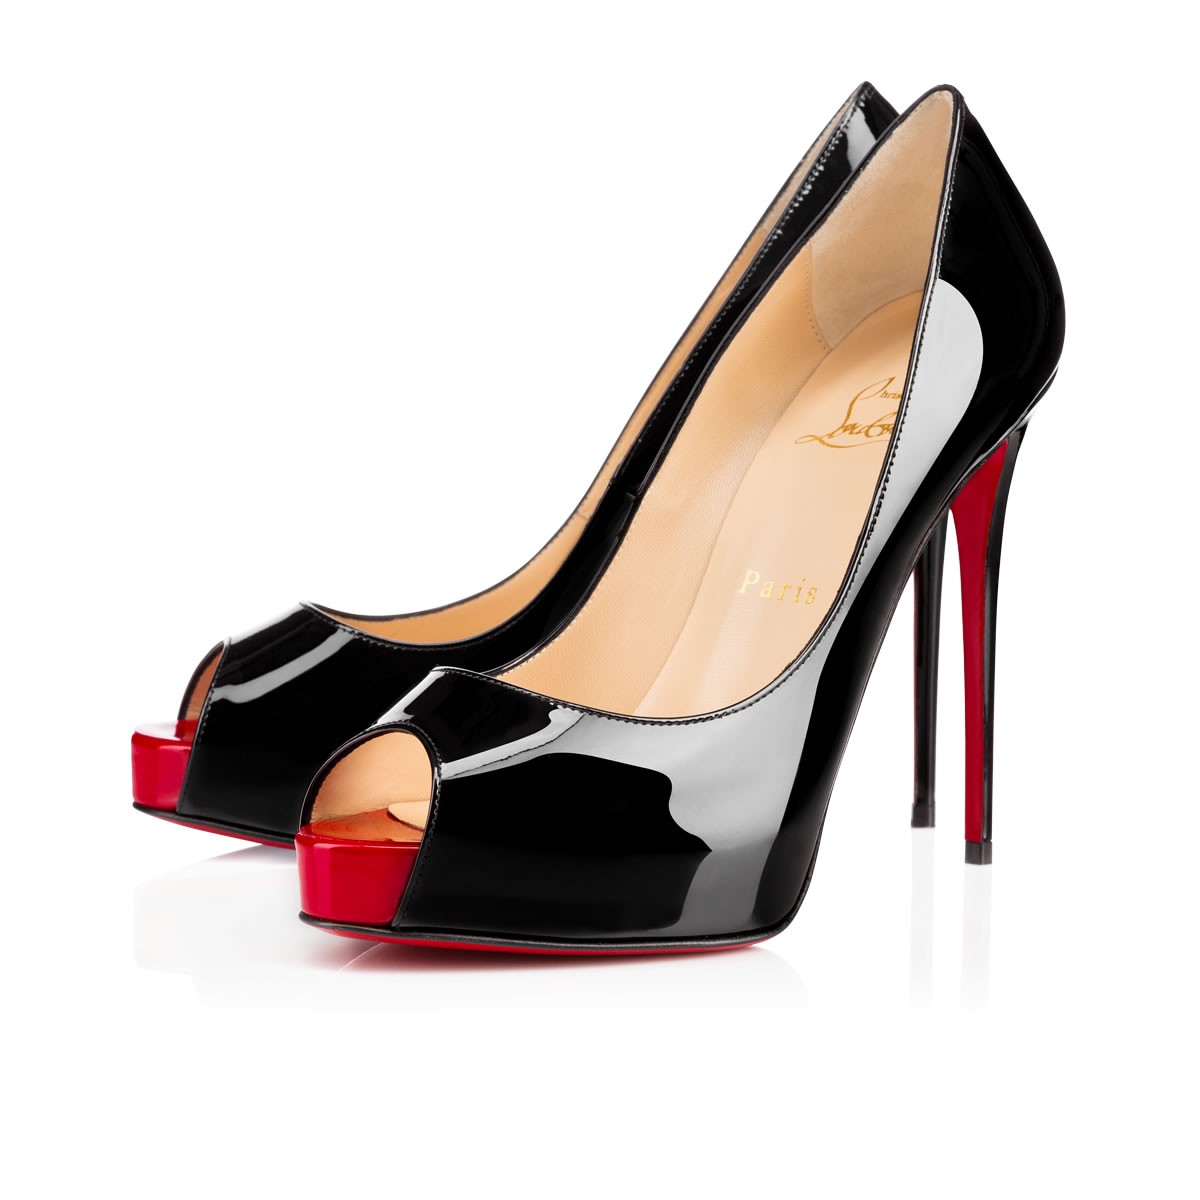 new simple pump 120 black patent leather women shoes christian rh us christianlouboutin com